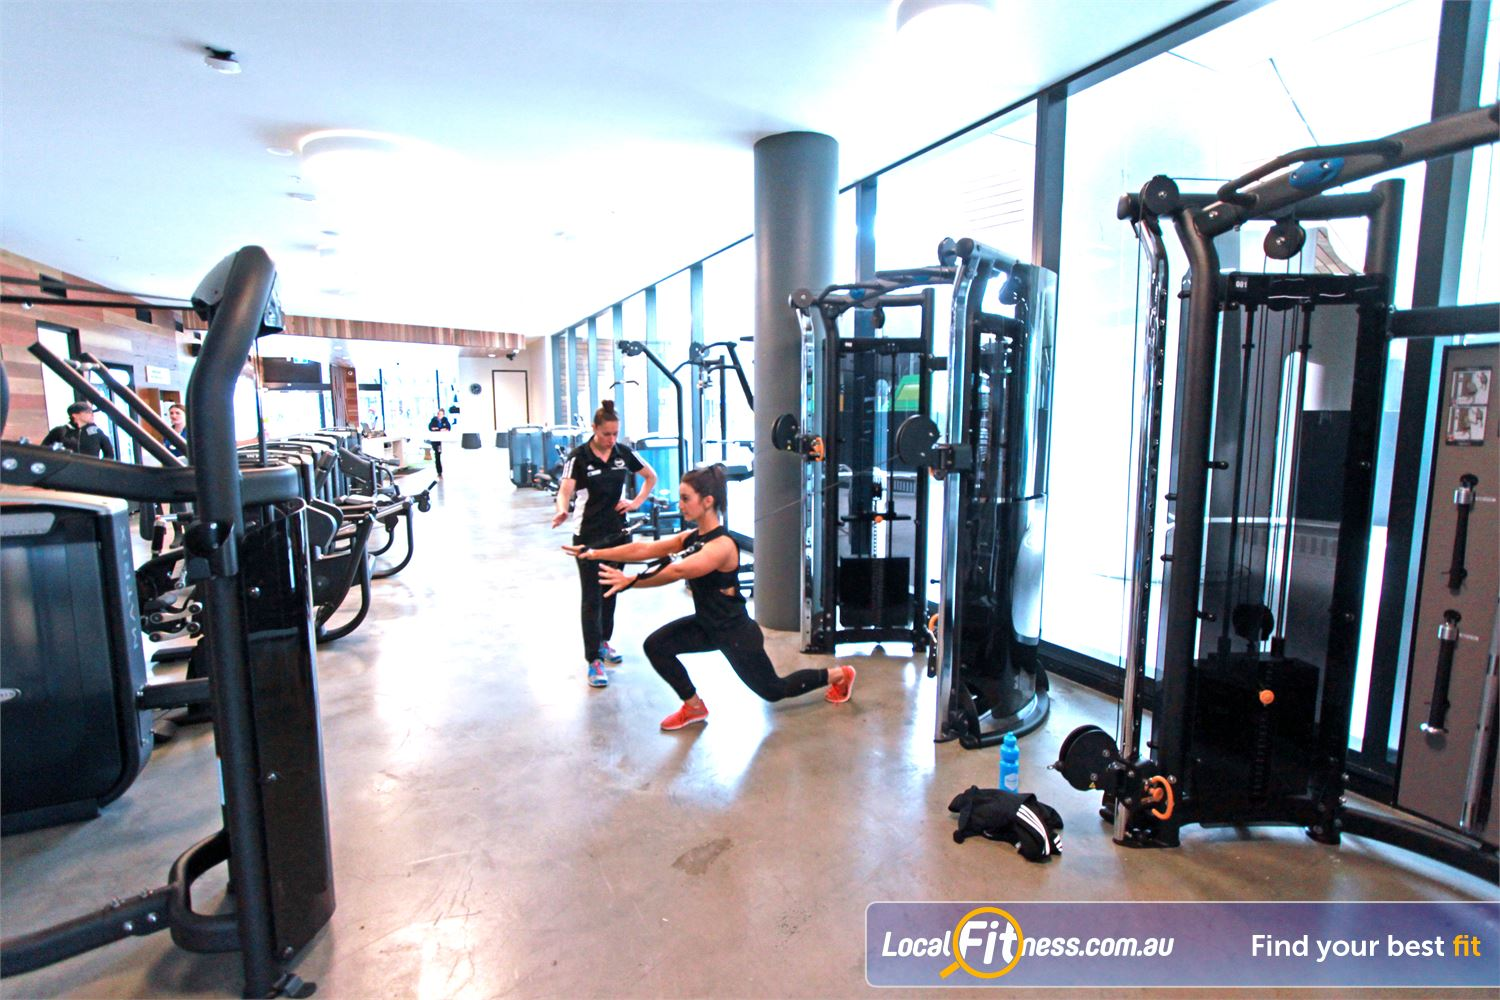 Goodlife Health Clubs Docklands Our Goodlife Docklands gym team are ready to help you reach your goals.